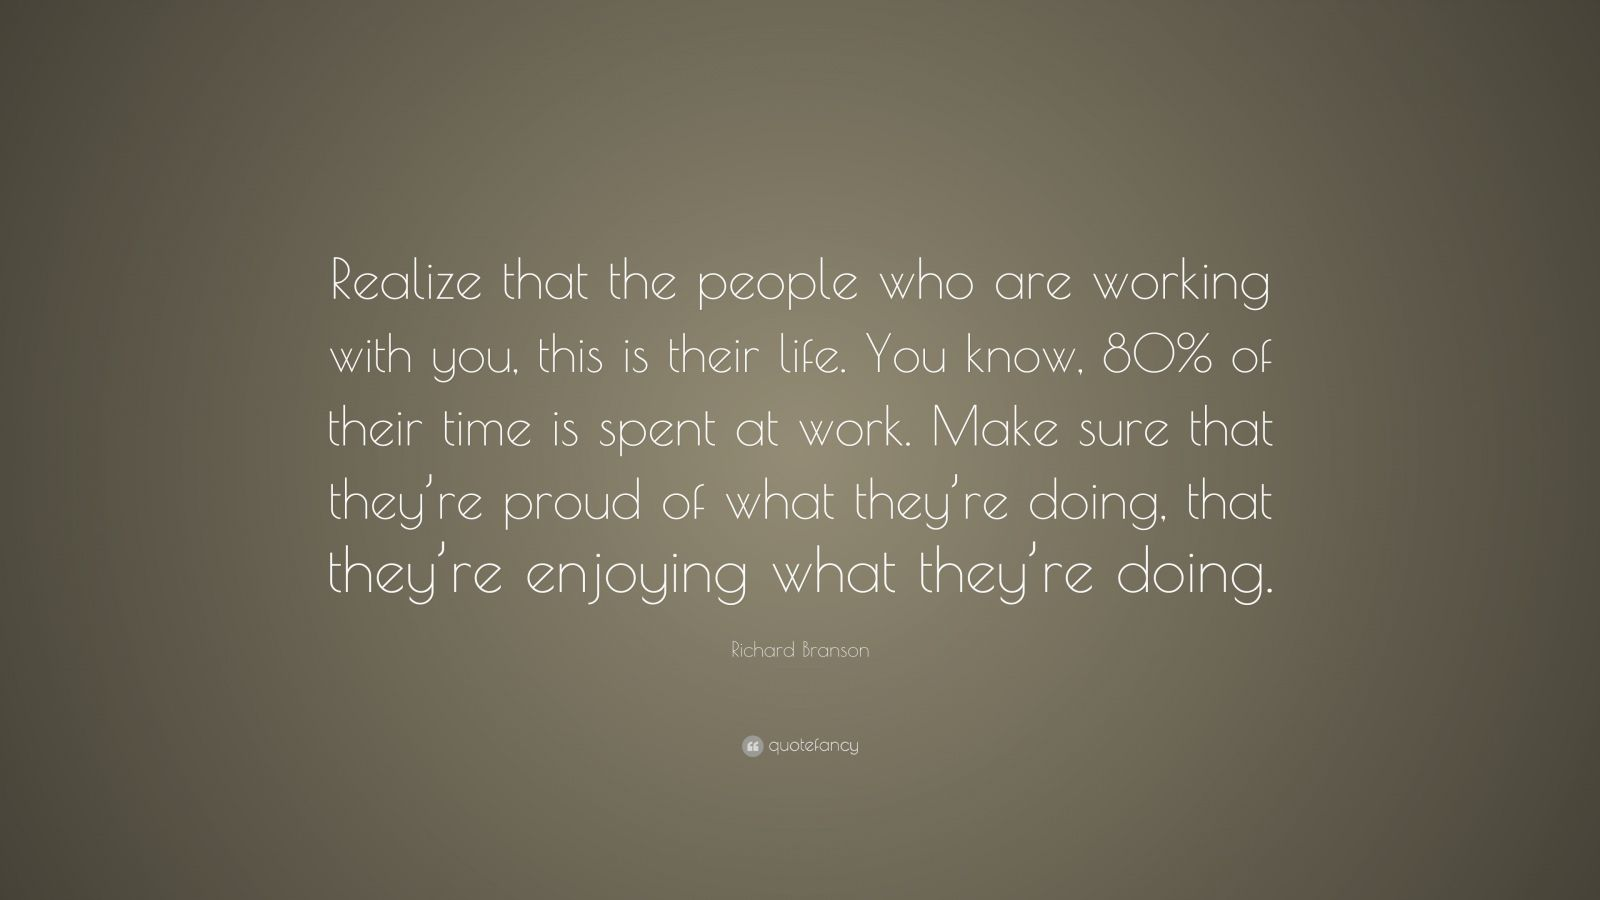 """Richard Branson Quote: """"Realize that the people who are working with you, this is their life. You know, 80% of their time is spent at work. Make sure that they're proud of what they're doing, that they're enjoying what they're doing."""""""